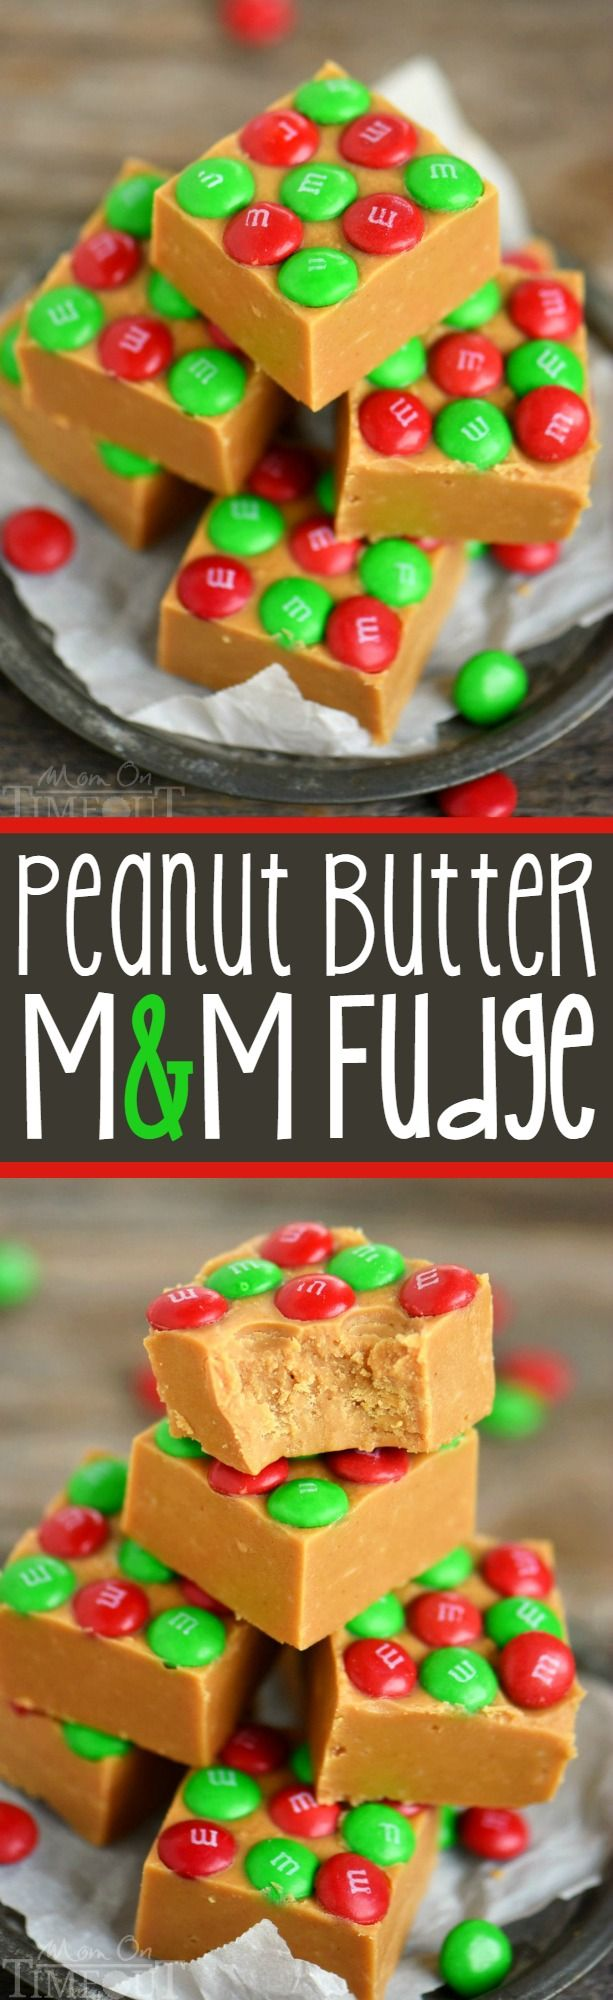 The EASIEST candy you'll make all season and will FOR SURE become a new favorite! This Outrageous Peanut Butter M&M's Fudge is so creamy and delicious and is topped with festive holiday M&M's! Perfect for Christmas!